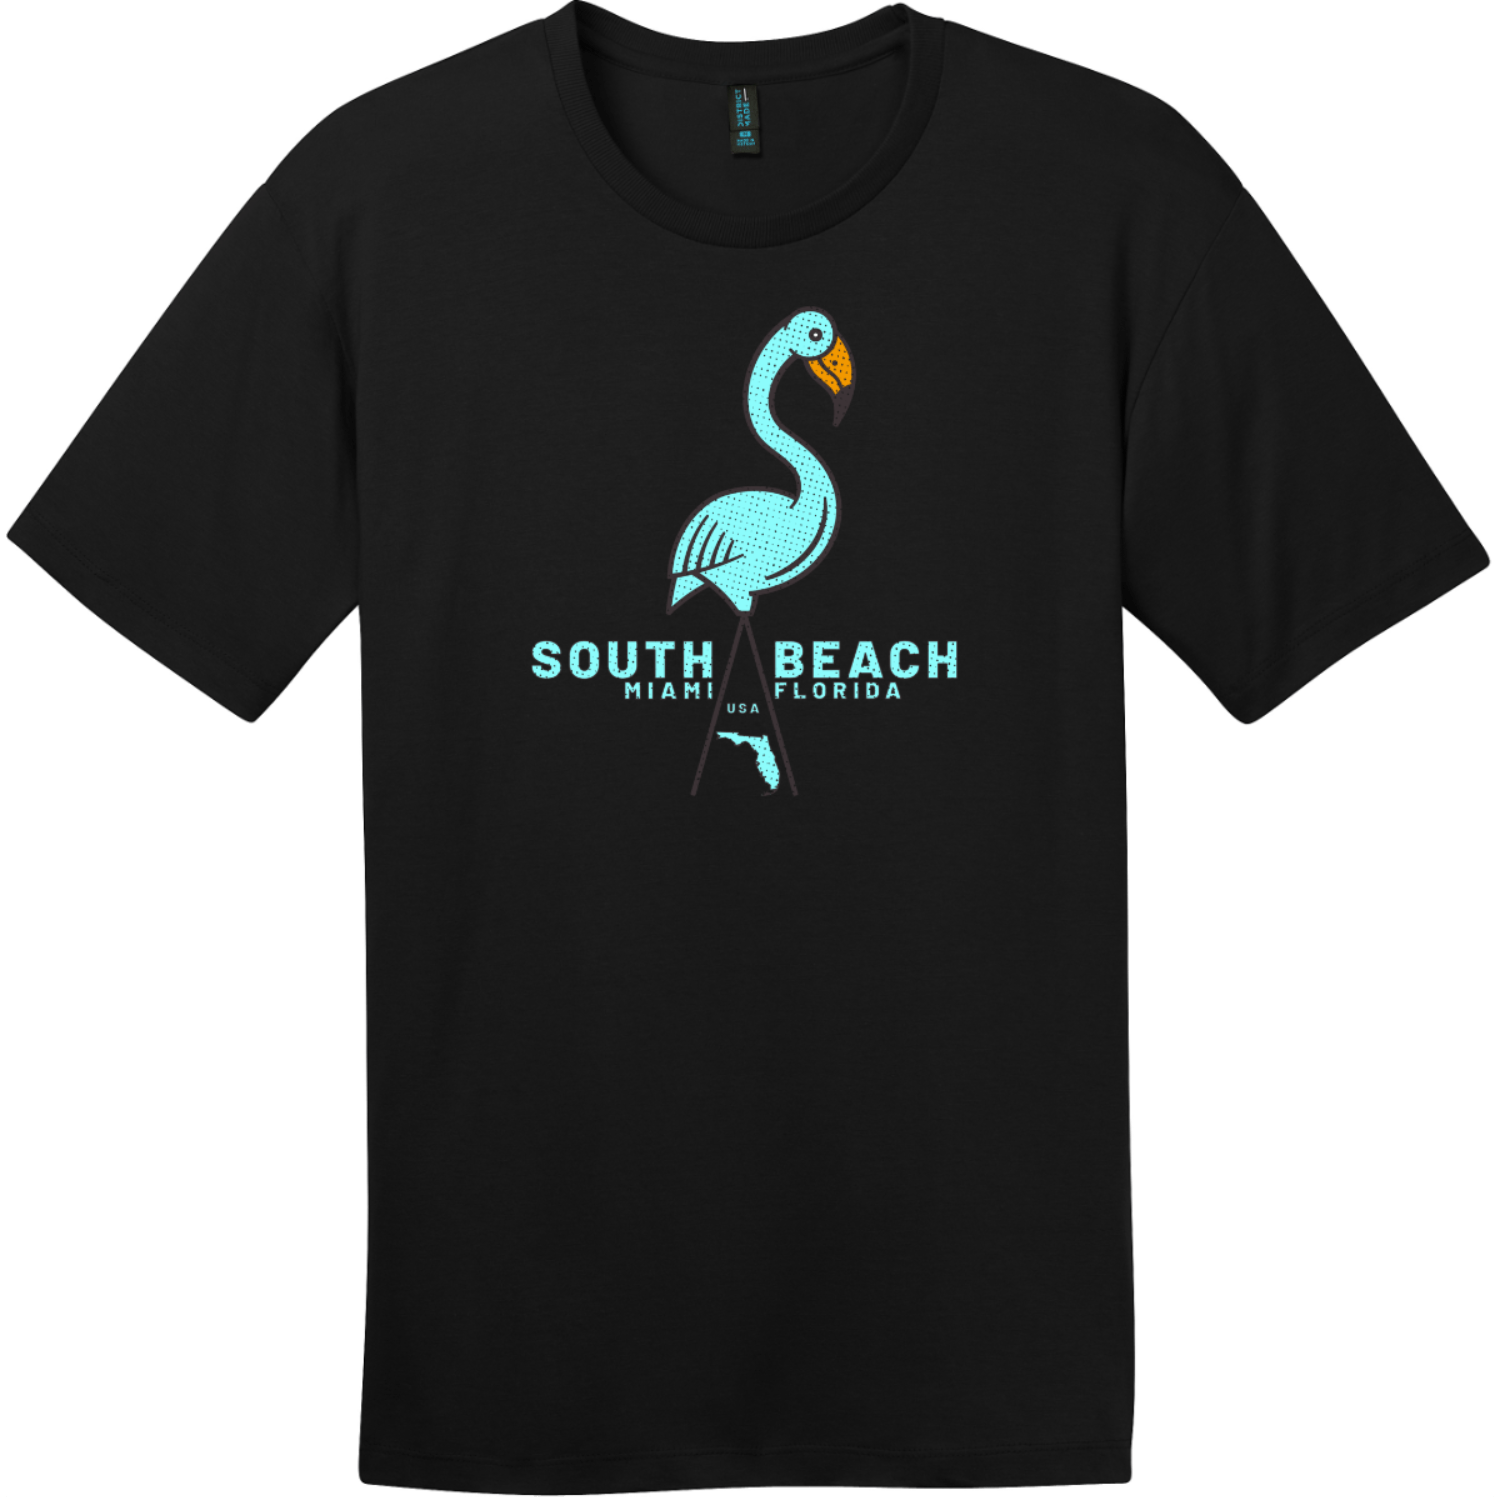 South Beach Miami Flamingo T Shirt Jet Black District Perfect Weight Tee DT104